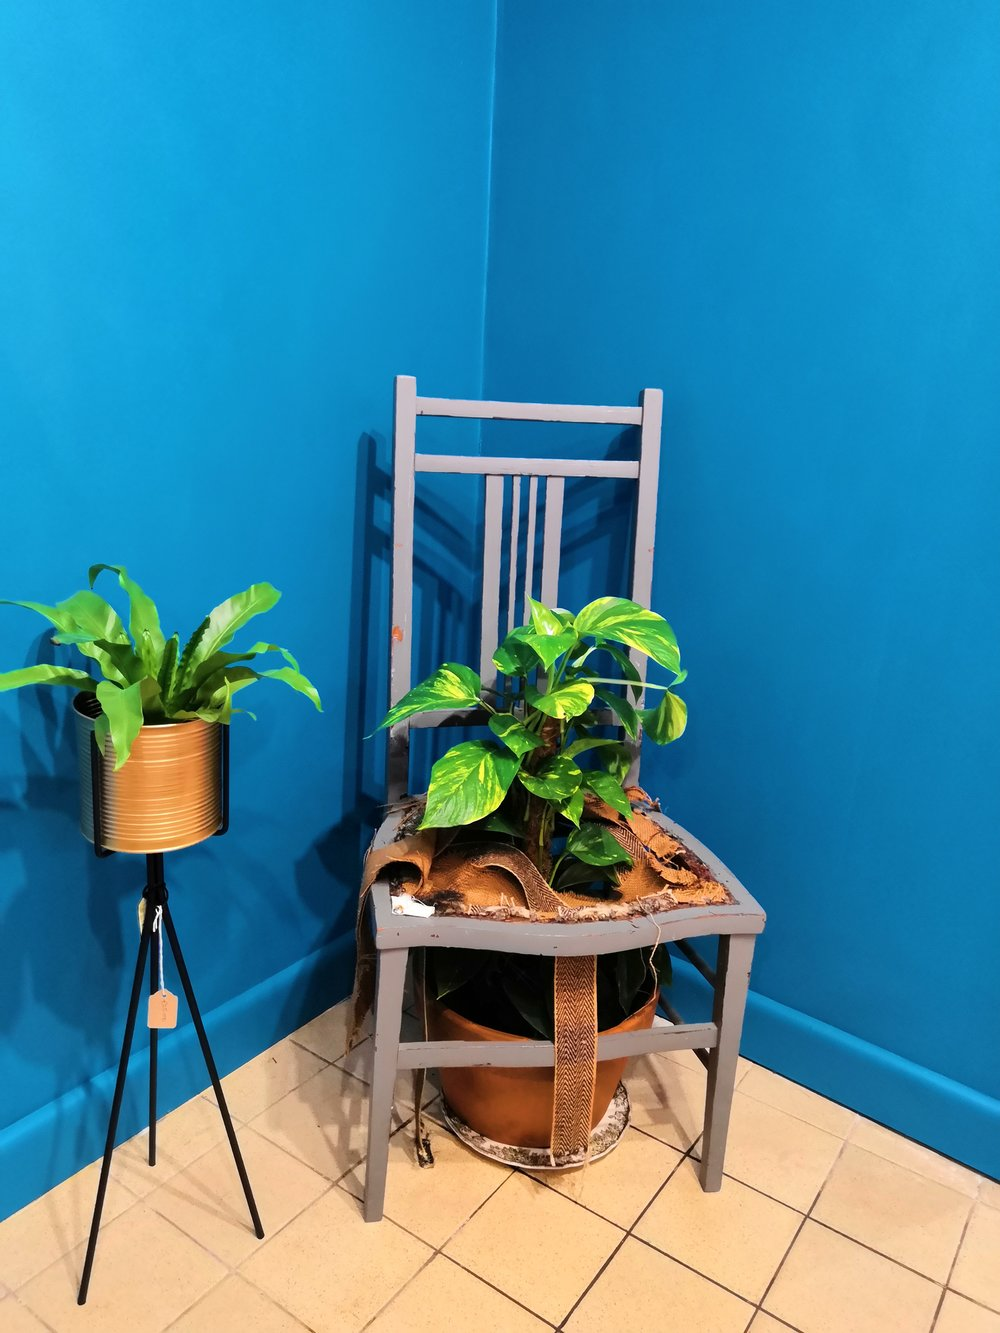 Broken chair = planter